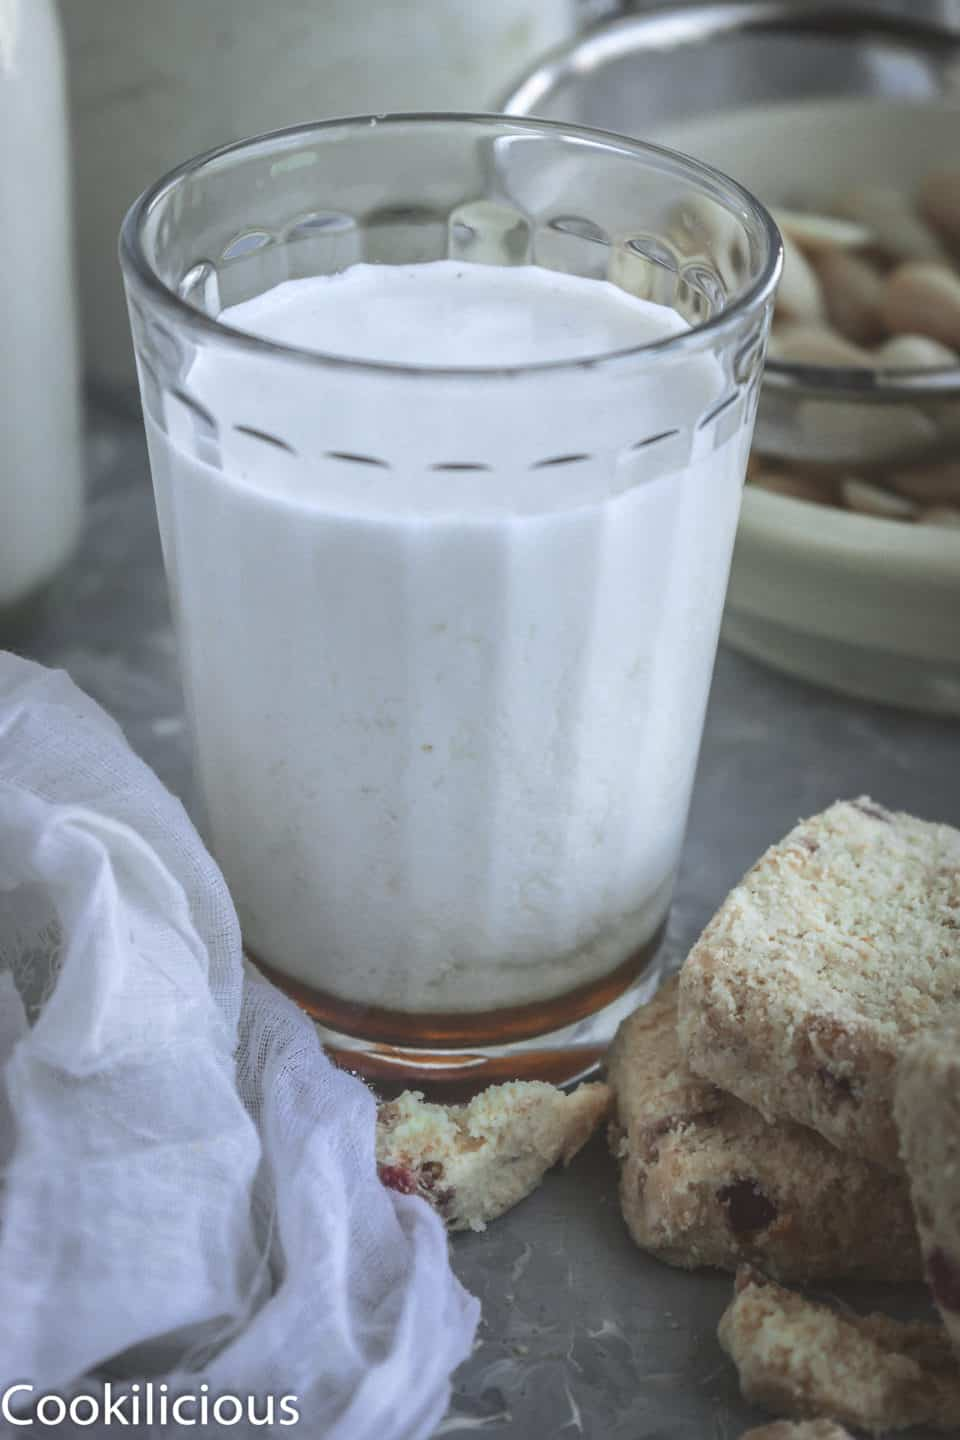 close up shot of a glass full of Almond Milk